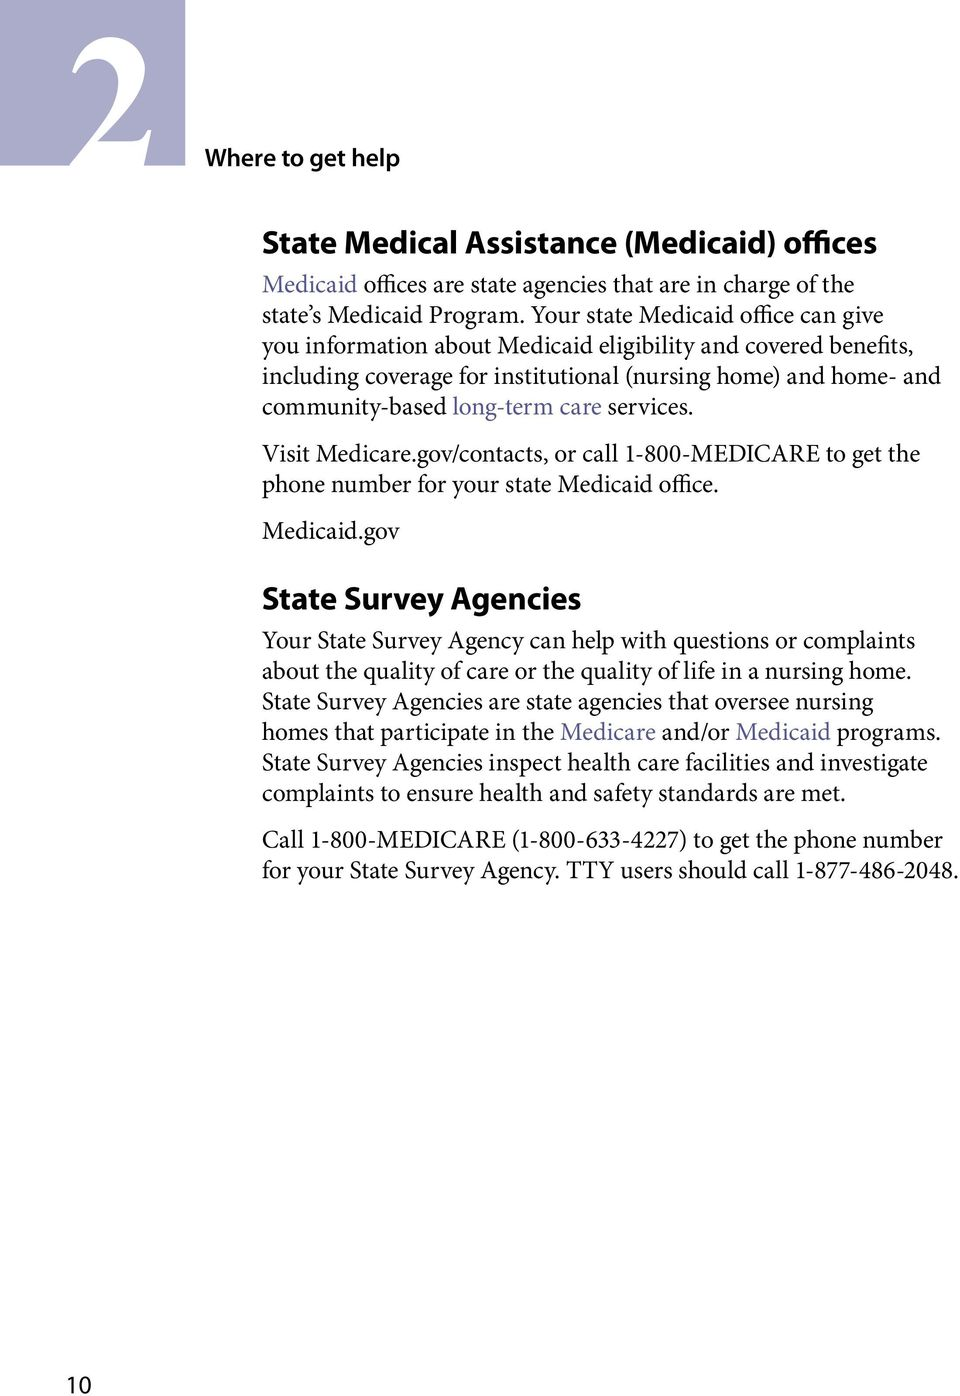 services. Visit Medicare.gov/contacts, or call 1-800-MEDICARE to get the phone number for your state Medicaid